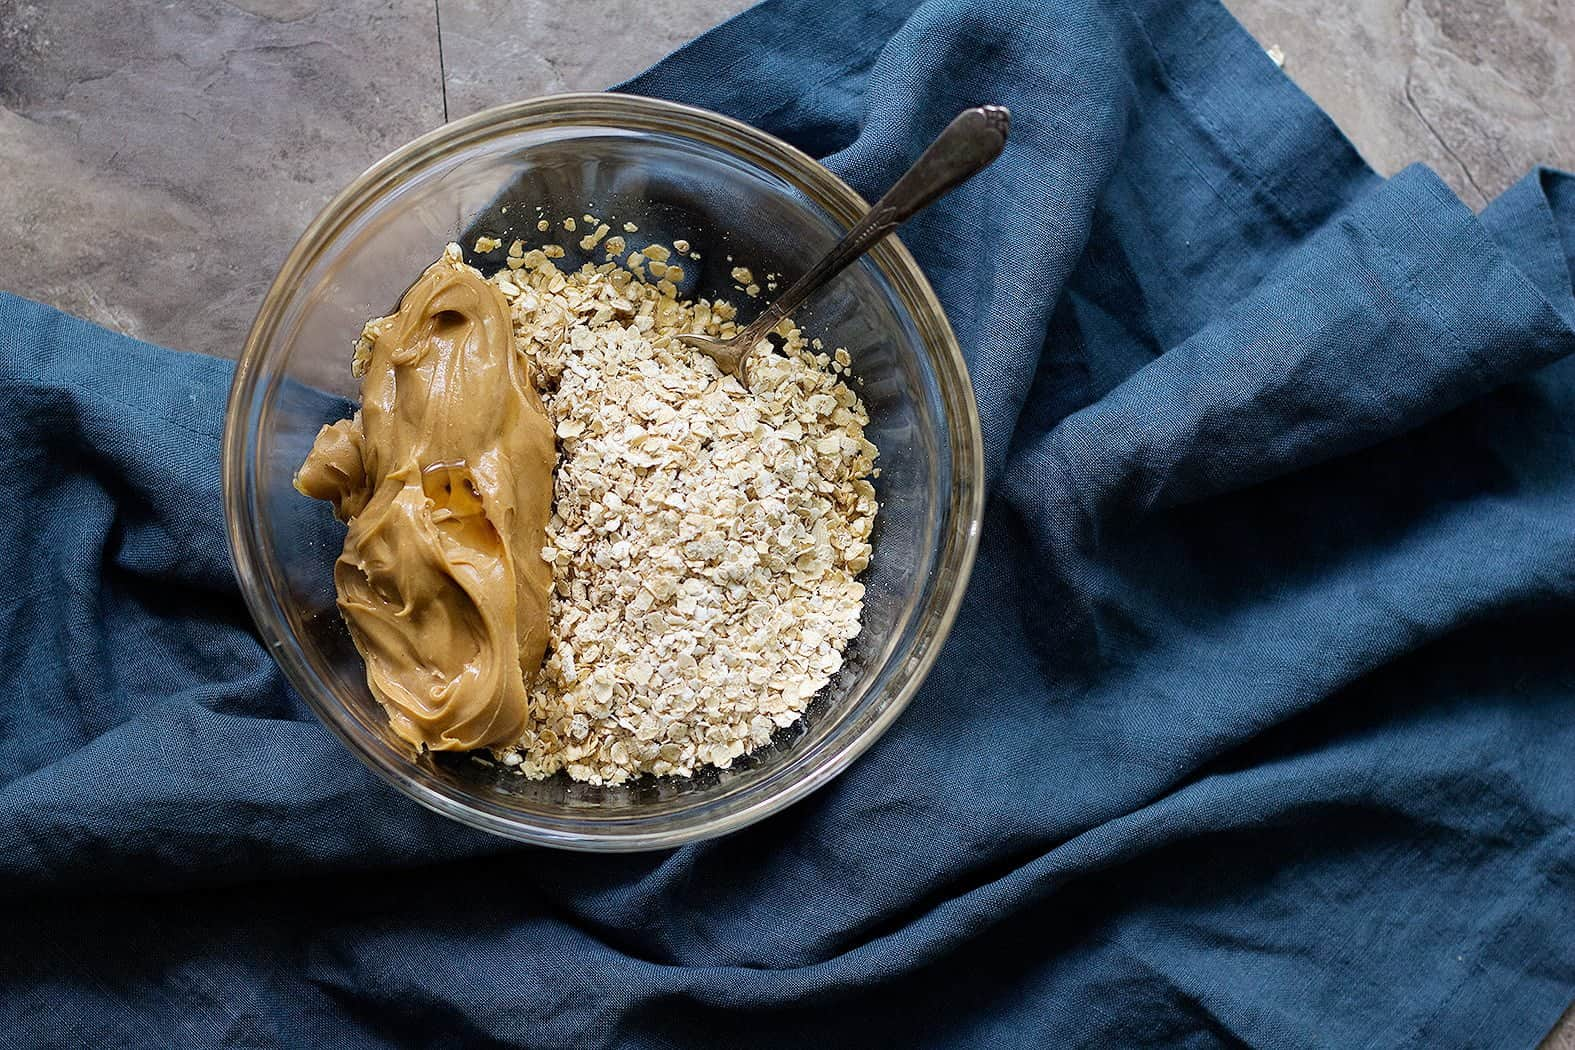 Mix peanut butter and oatmeal in a bowl. Add maple syrup and mix well.